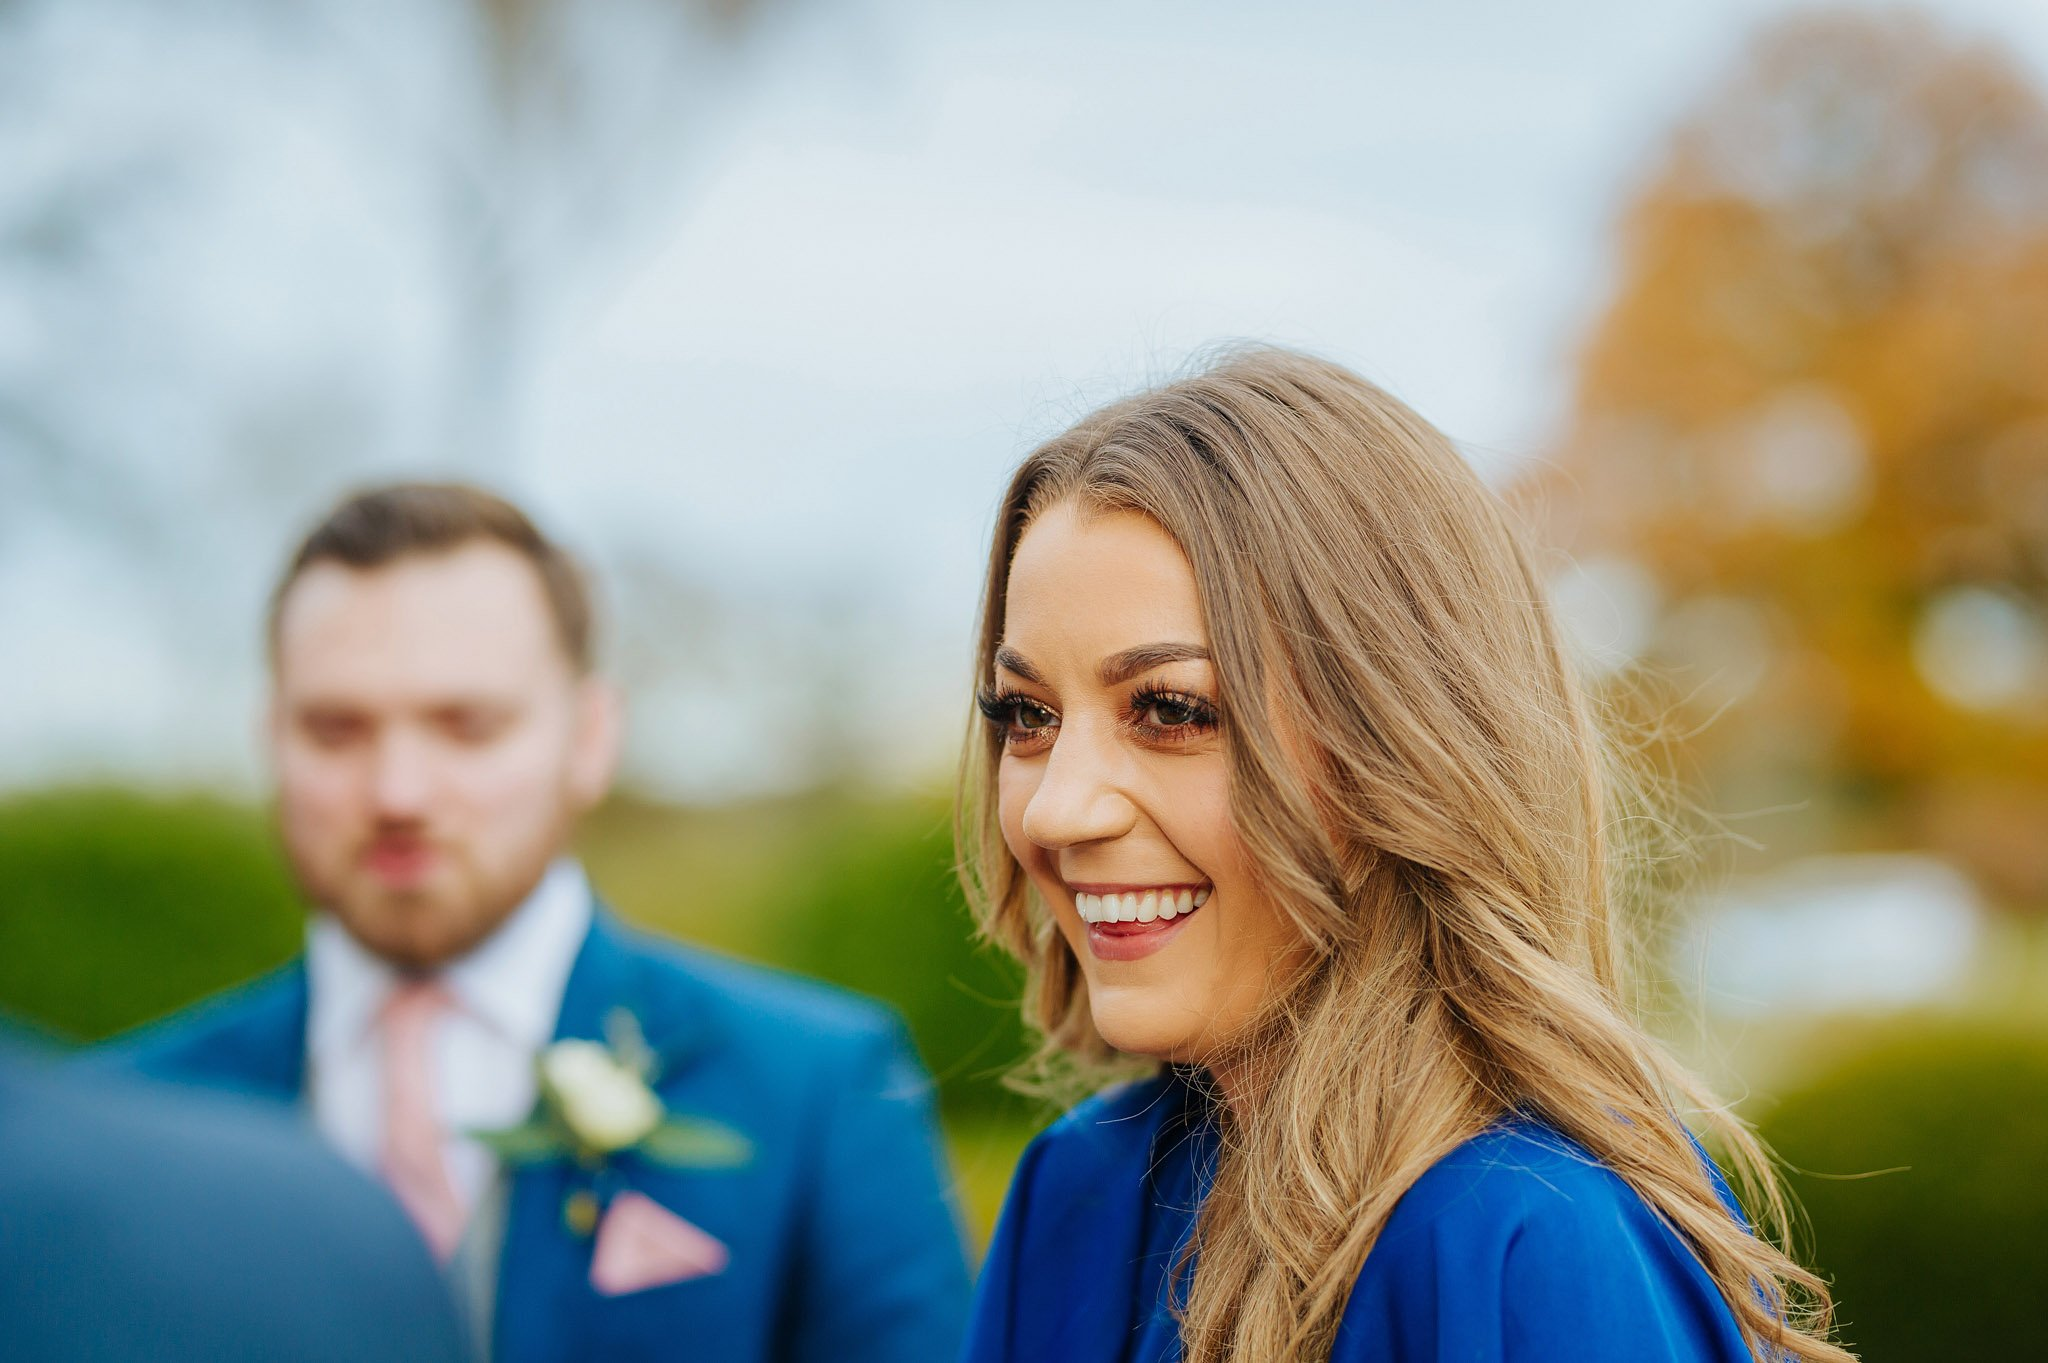 lemore manor wedding herefordshire 67 - Lemore Manor wedding, Herefordshire - West Midlands | Sadie + Ken